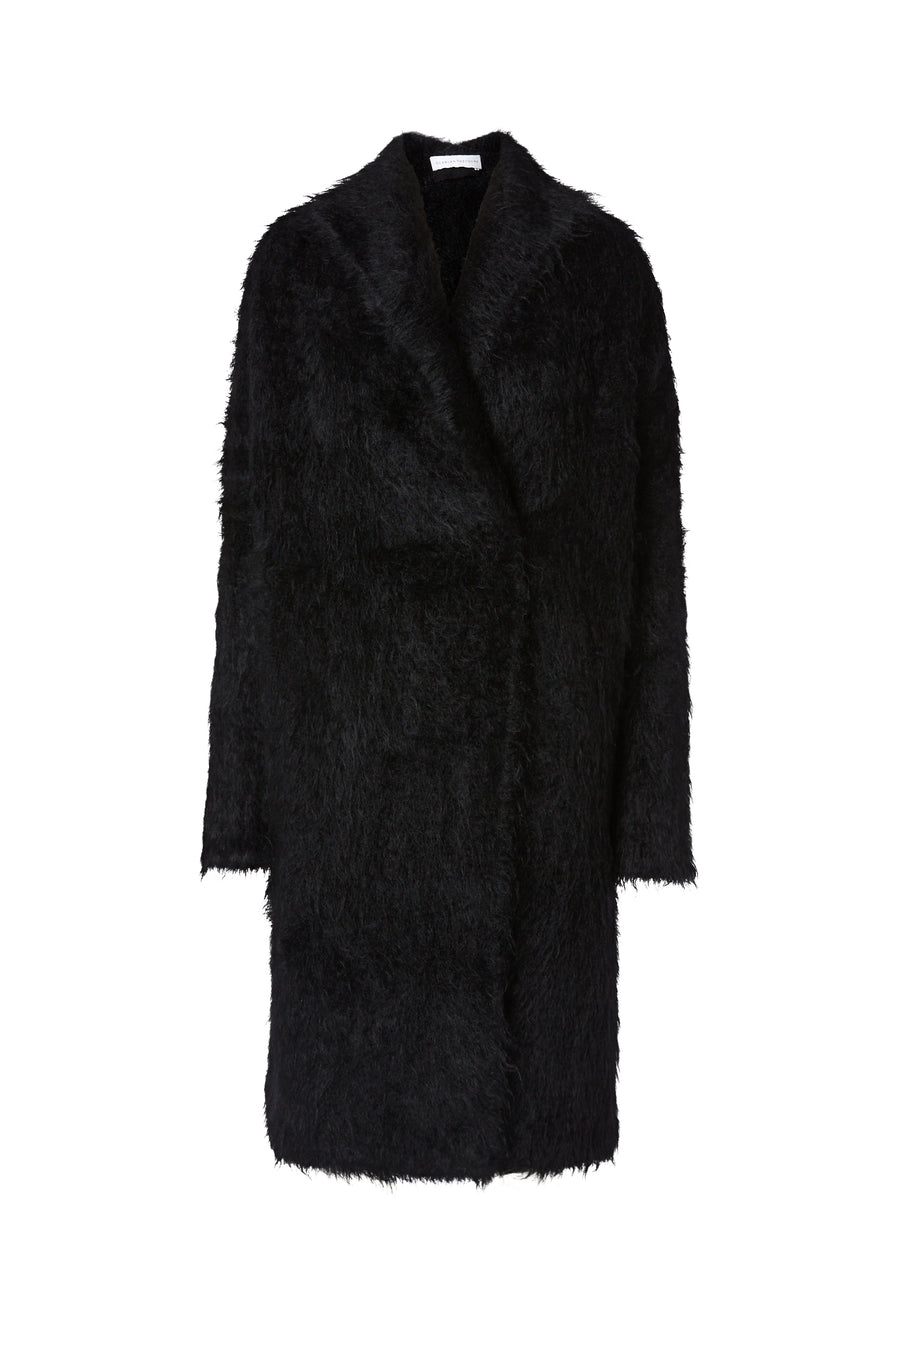 Brushed Mohair Cardigan, oversized, long sleeve, falls below knee, color Black